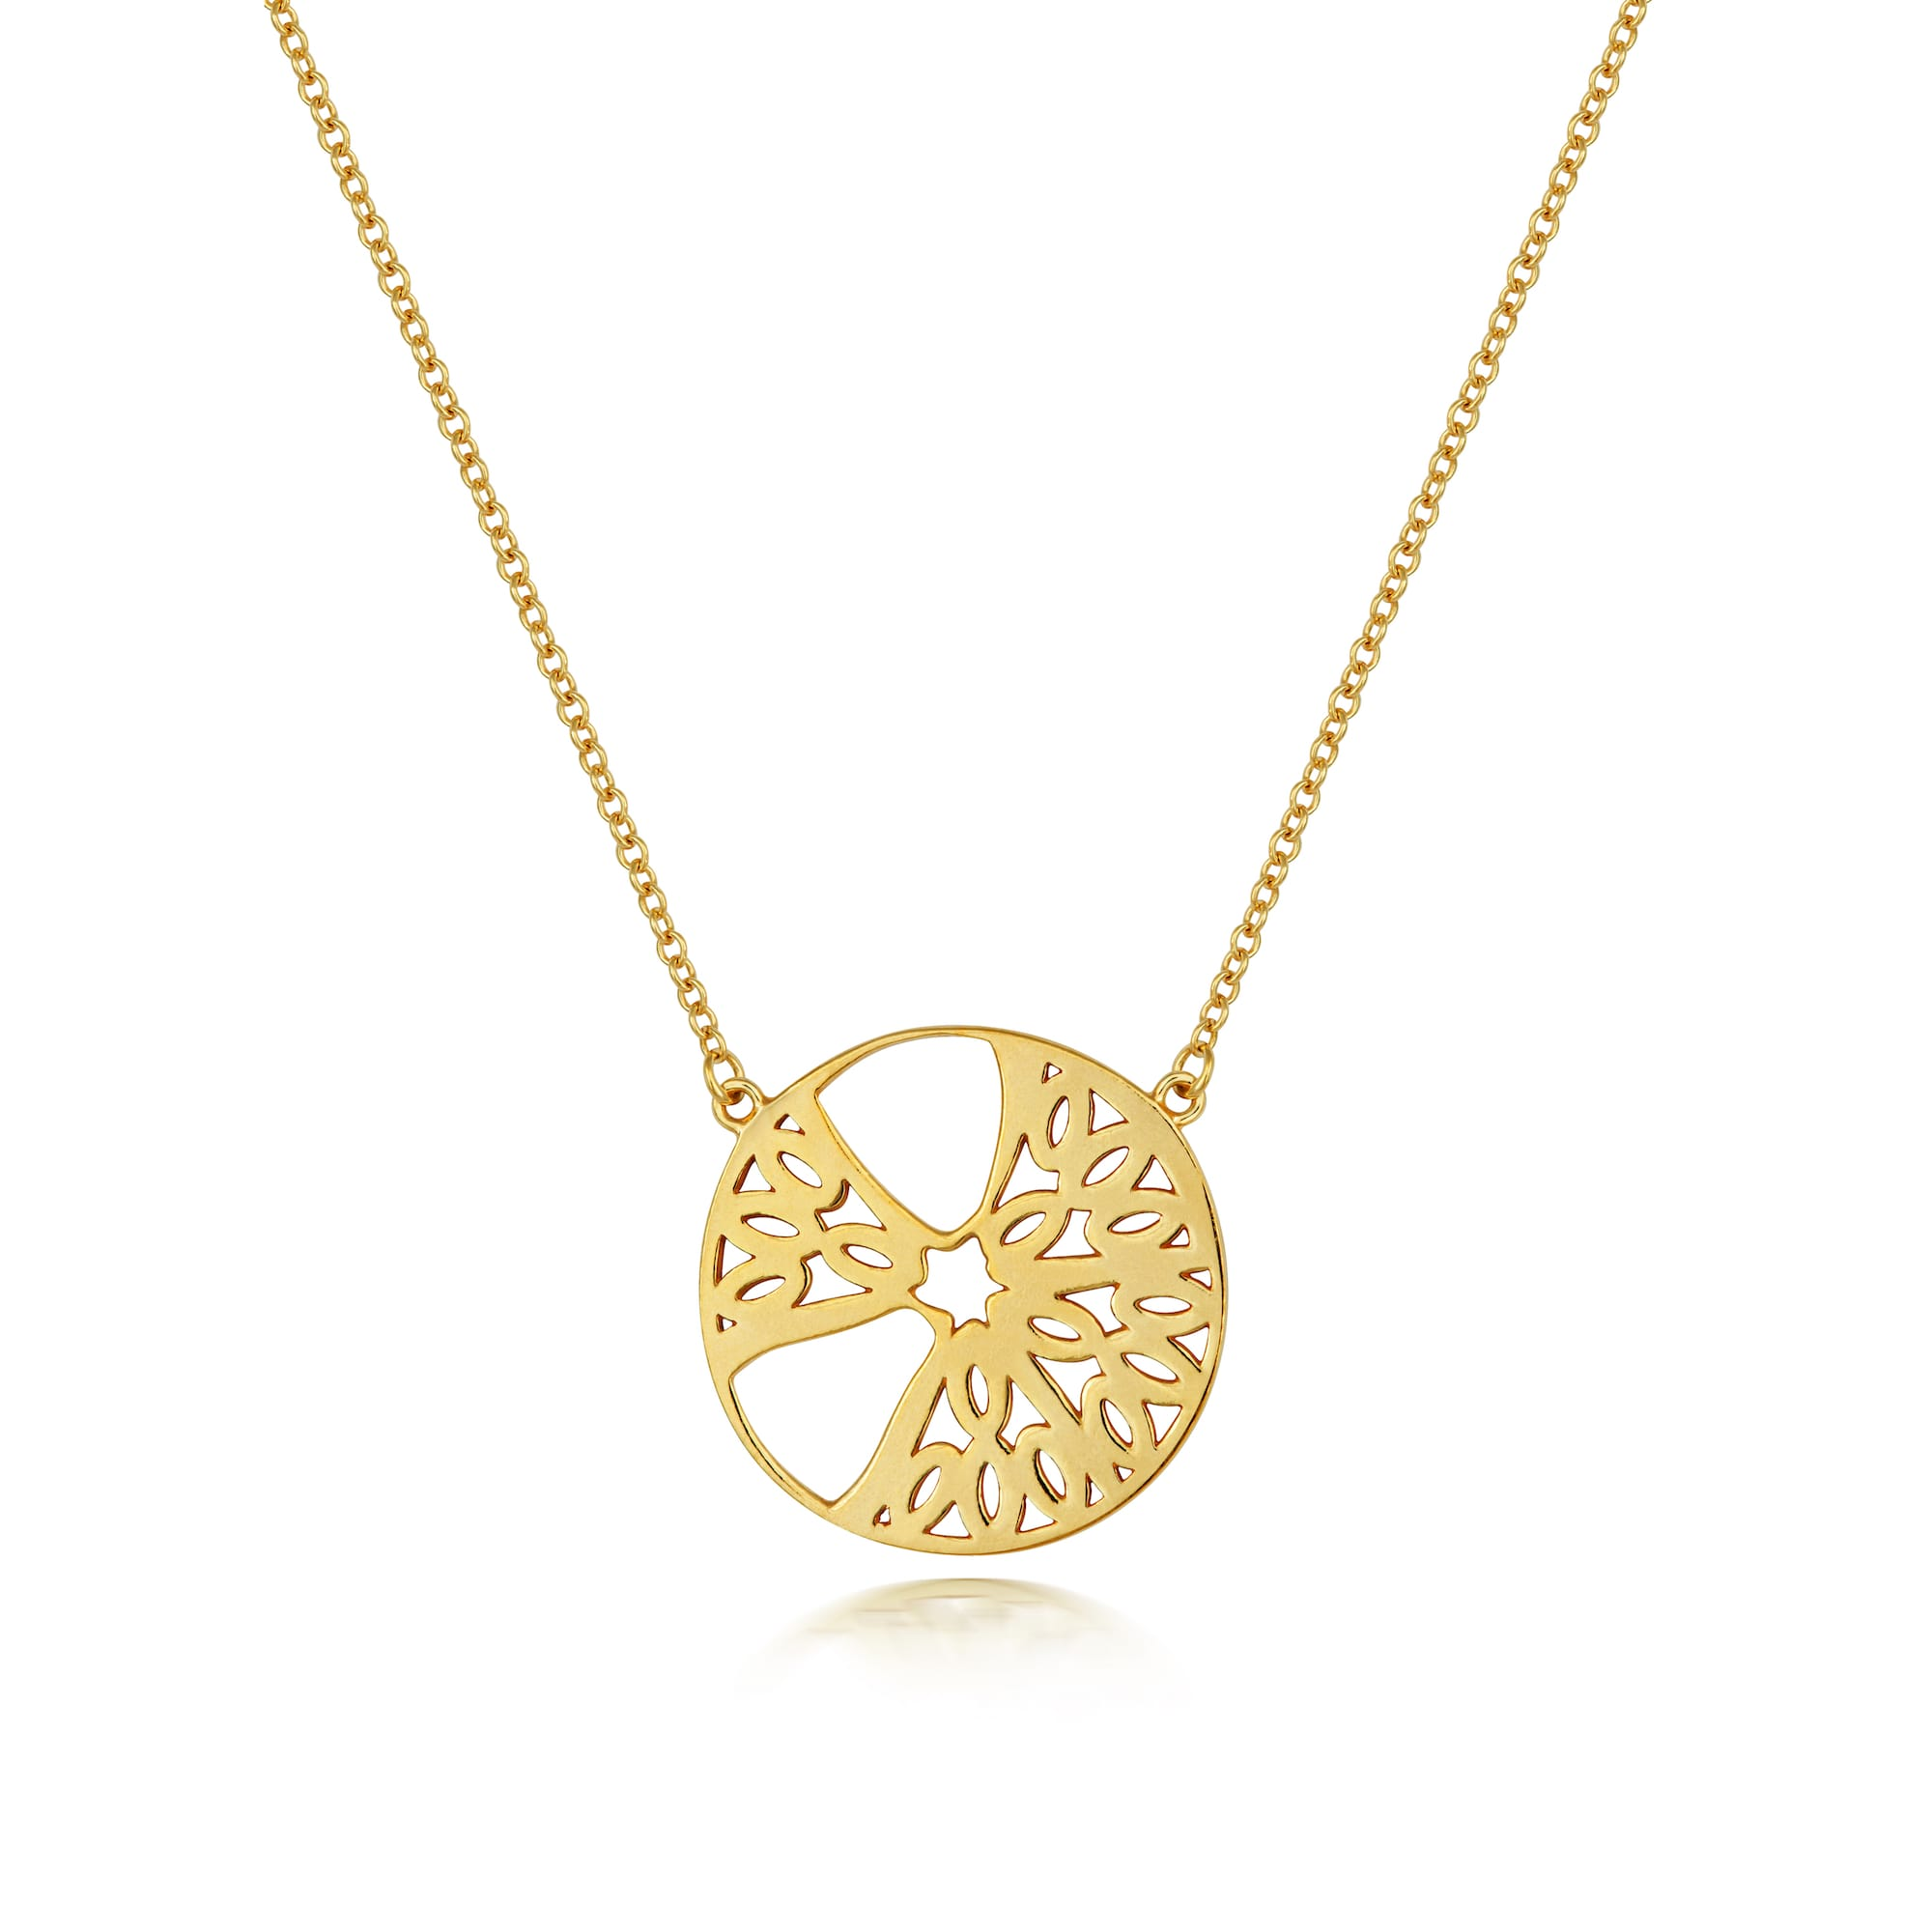 product anma diamond round little plate gold initial necklace jewellery